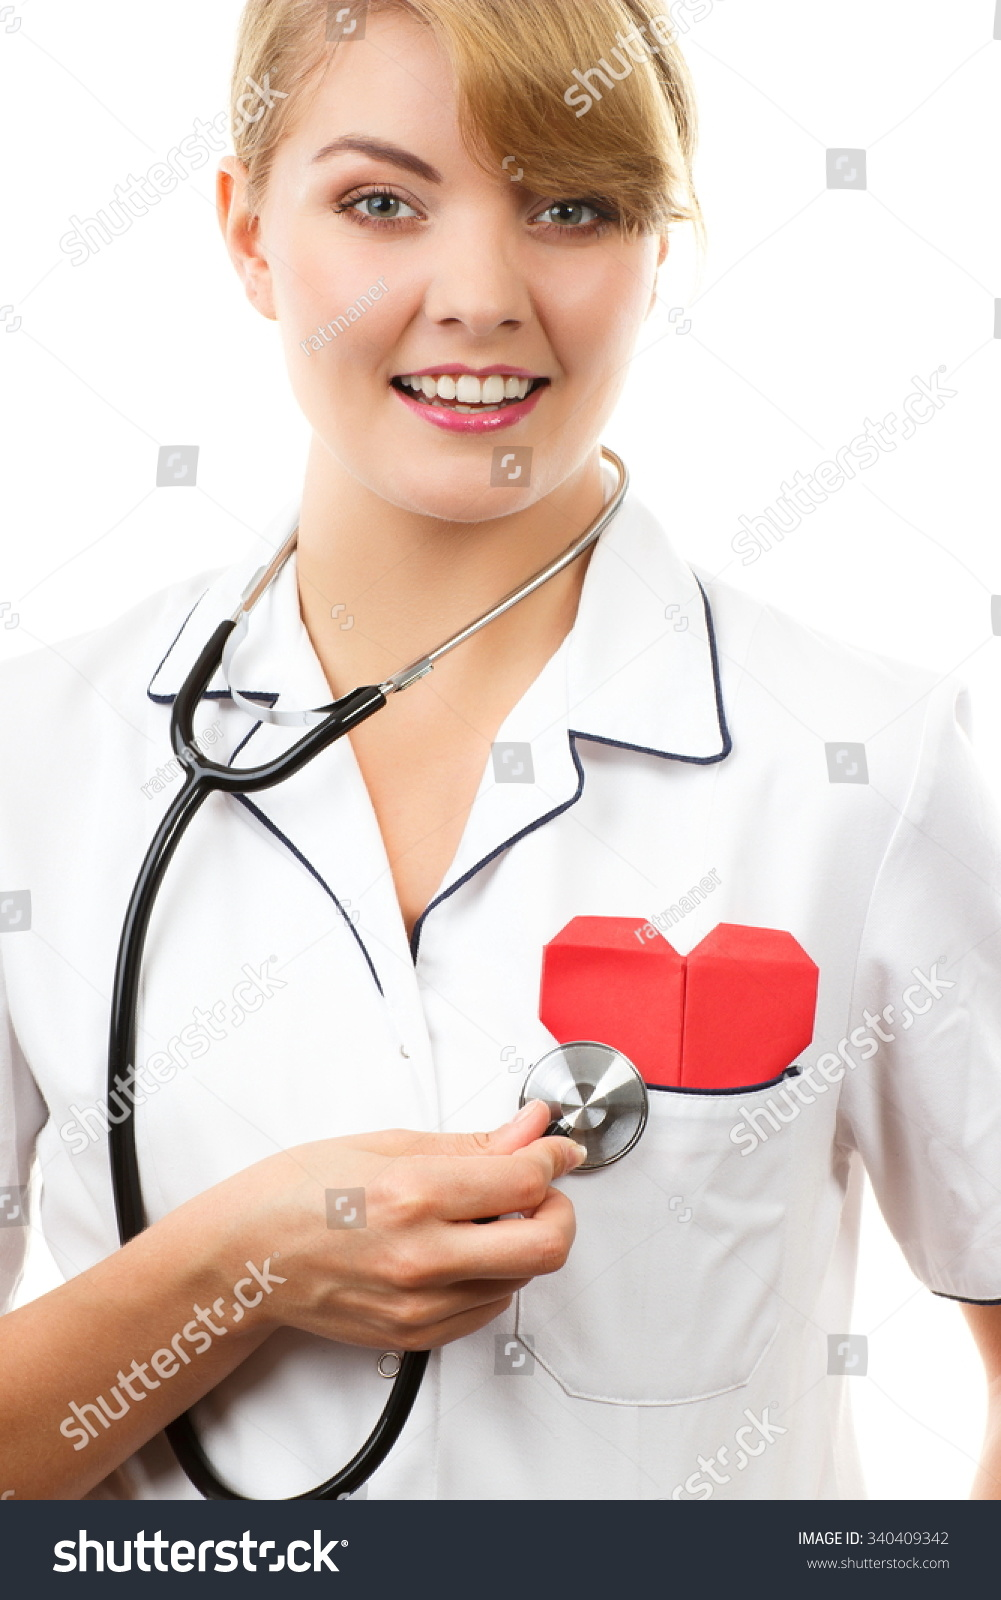 White apron health - Smiling Woman Doctor Cardiologist In White Apron With Stethoscope Examining Red Heart Healthcare And Medicine